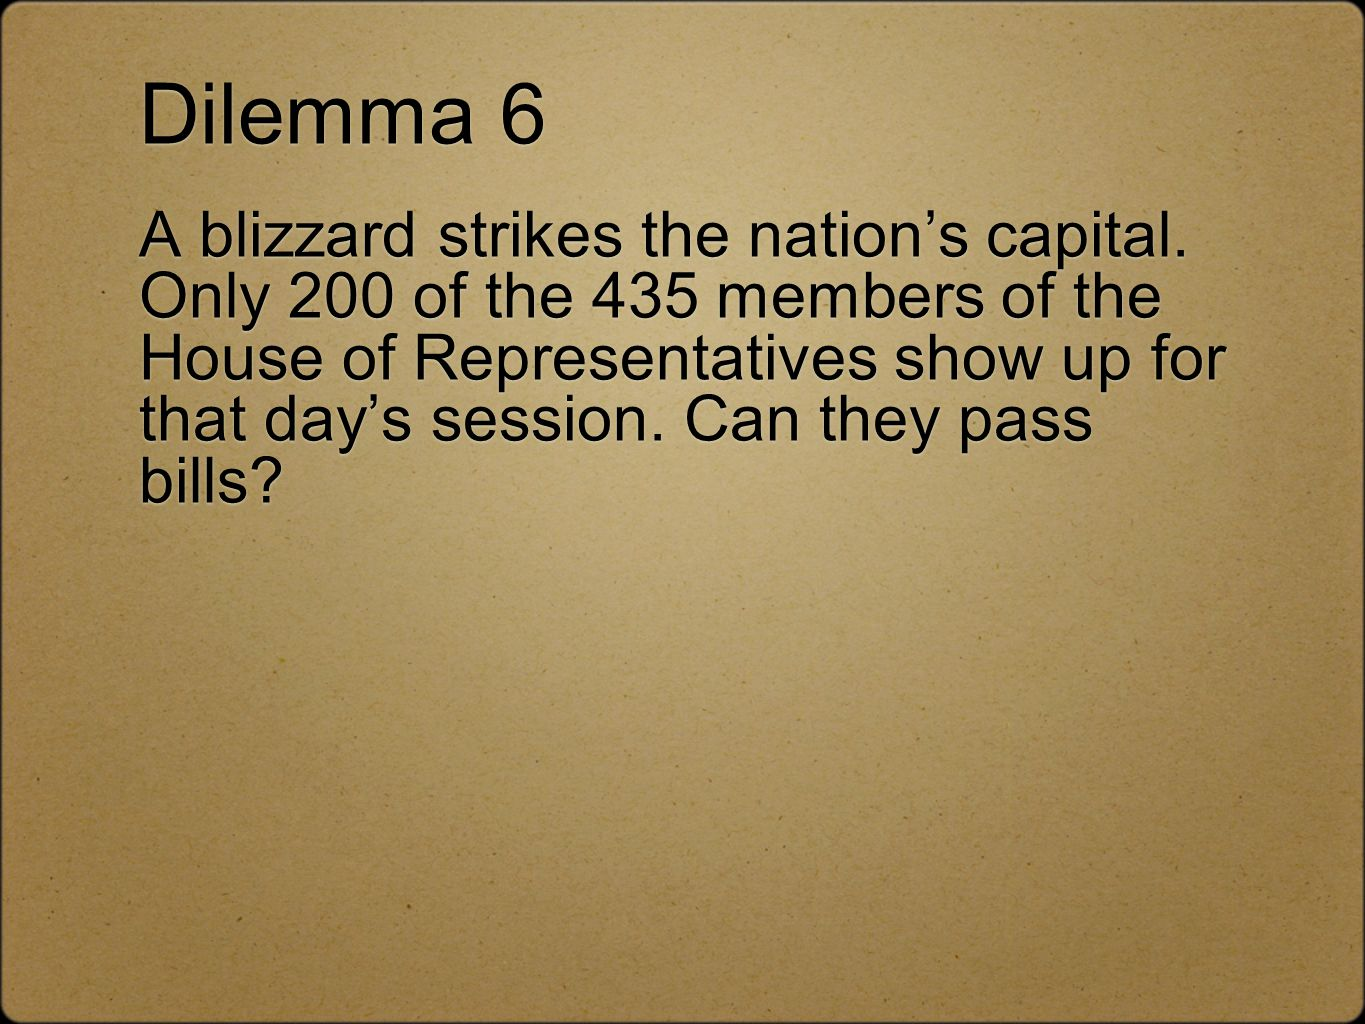 Dilemma 6 A blizzard strikes the nation's capital